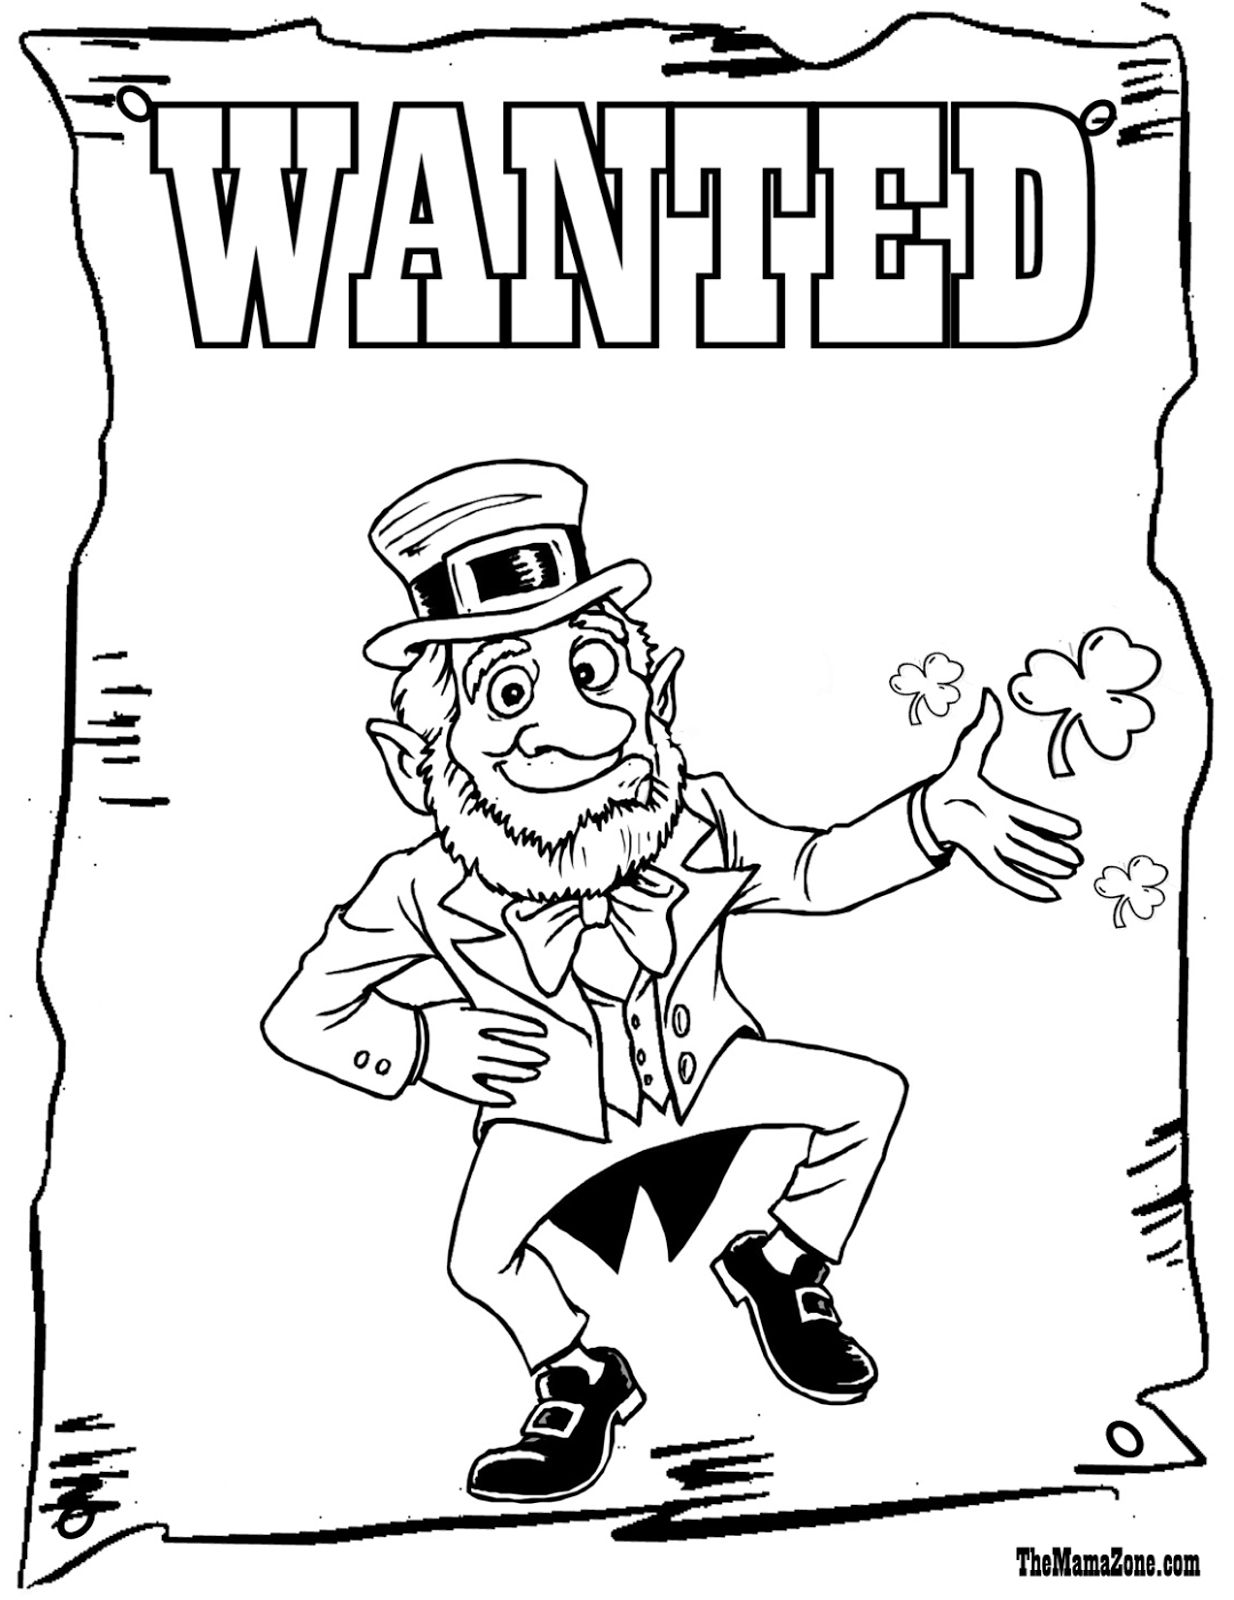 st patricks day coloring pages - saint patrick 39 s day coloring pages the mamazone